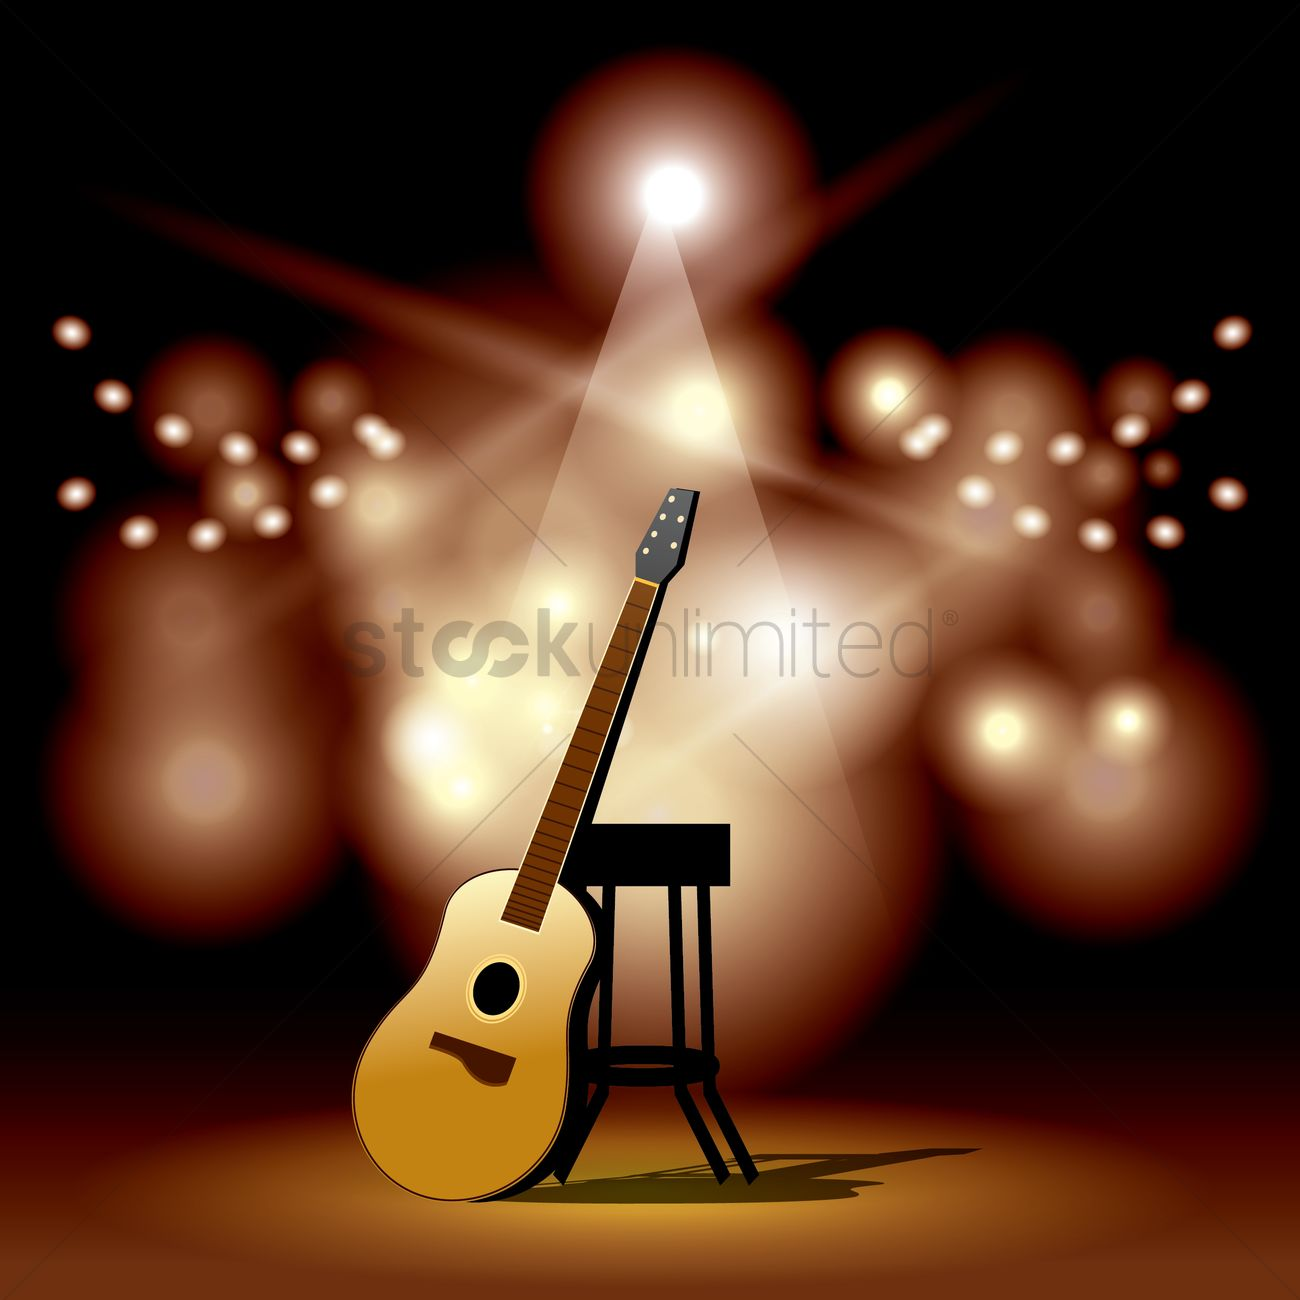 Guitar Stool Australia Acoustic Guitar And Stool On The Stage Vector Image 1920563